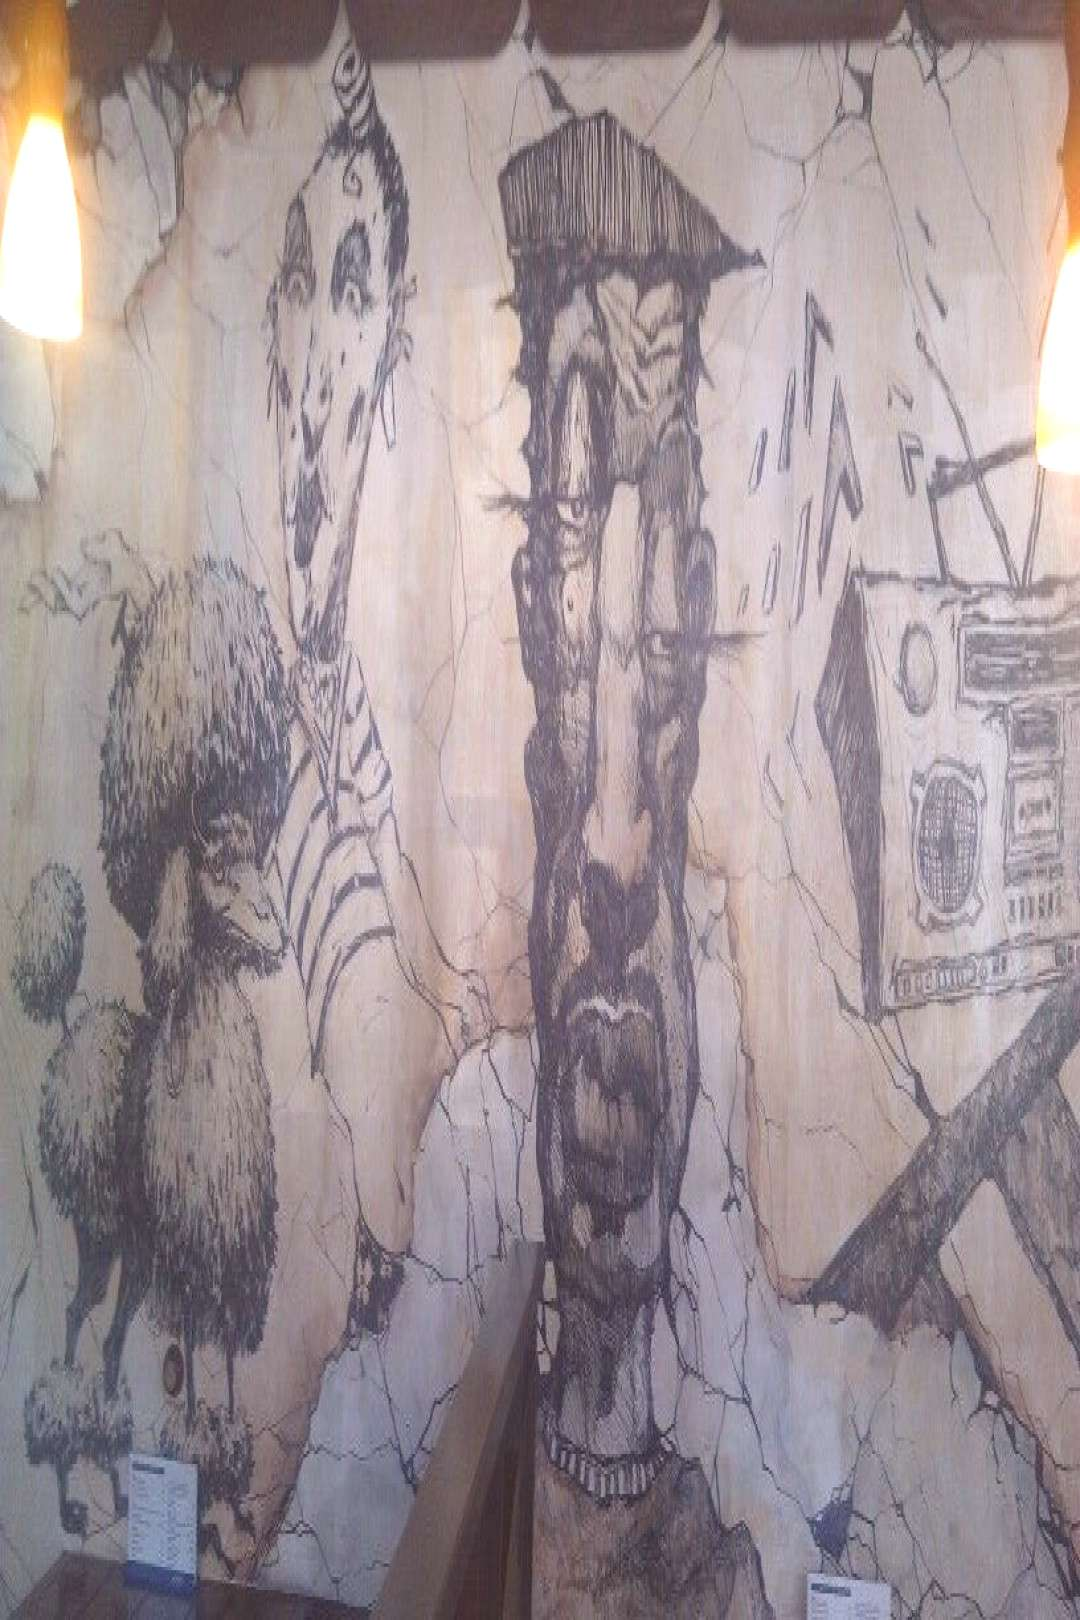 The gogi restaurants wall painting